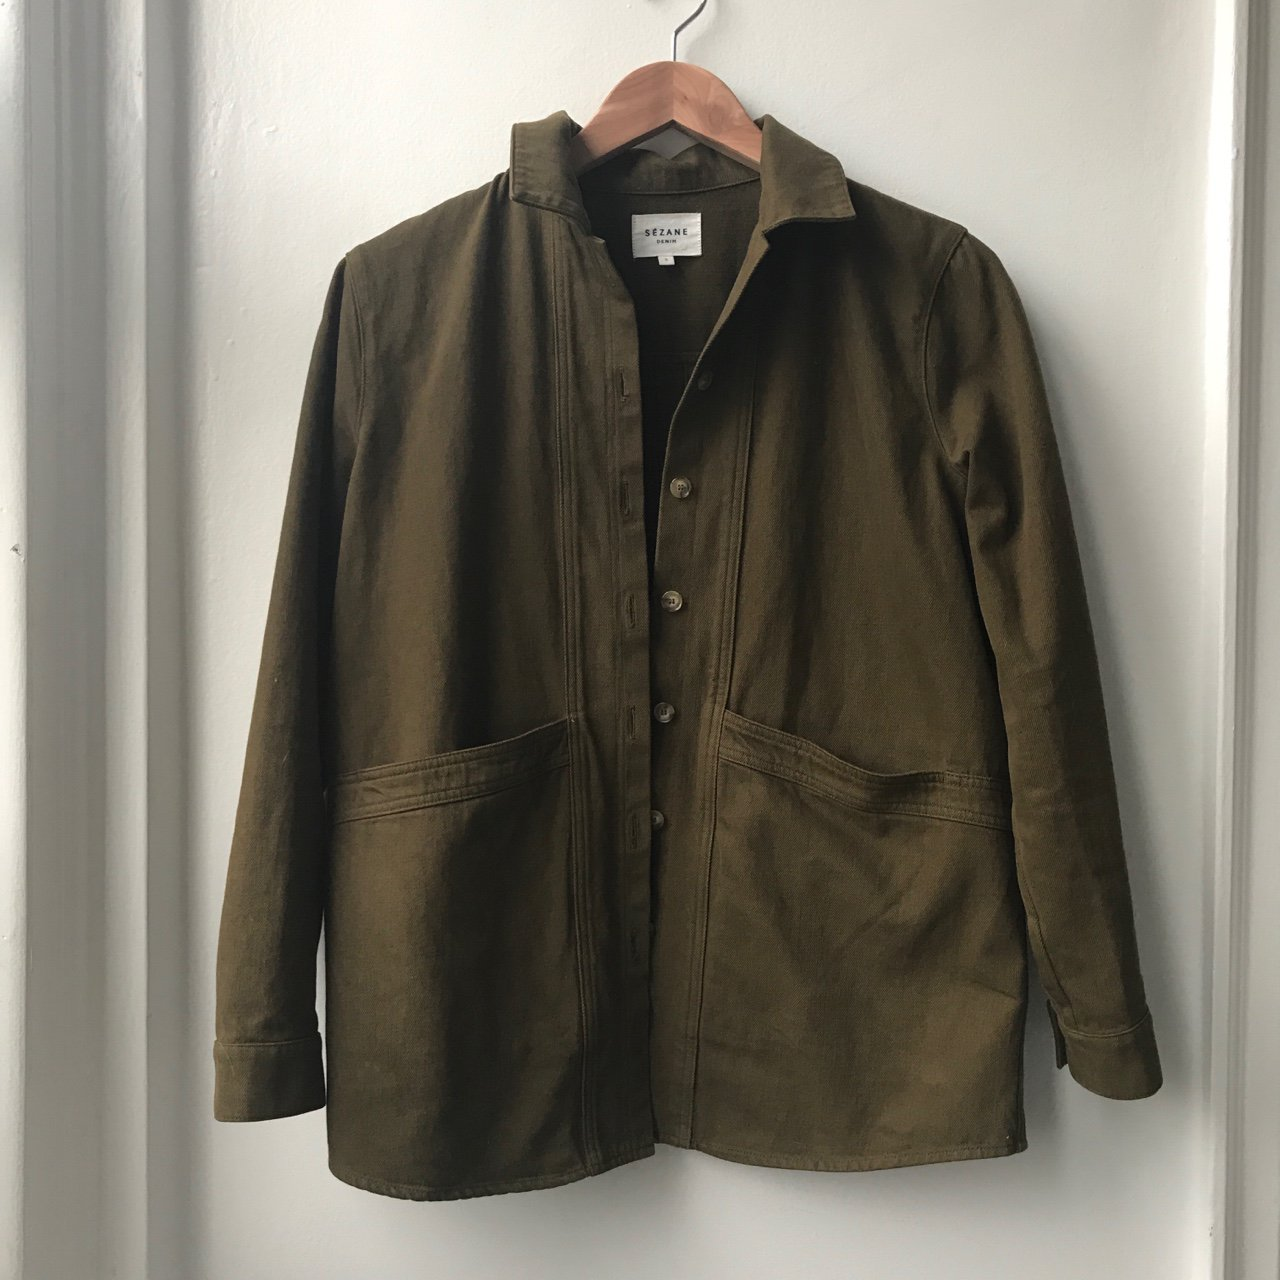 Sezane Work Jacket Size Small Olive Green Colored 145 Depop